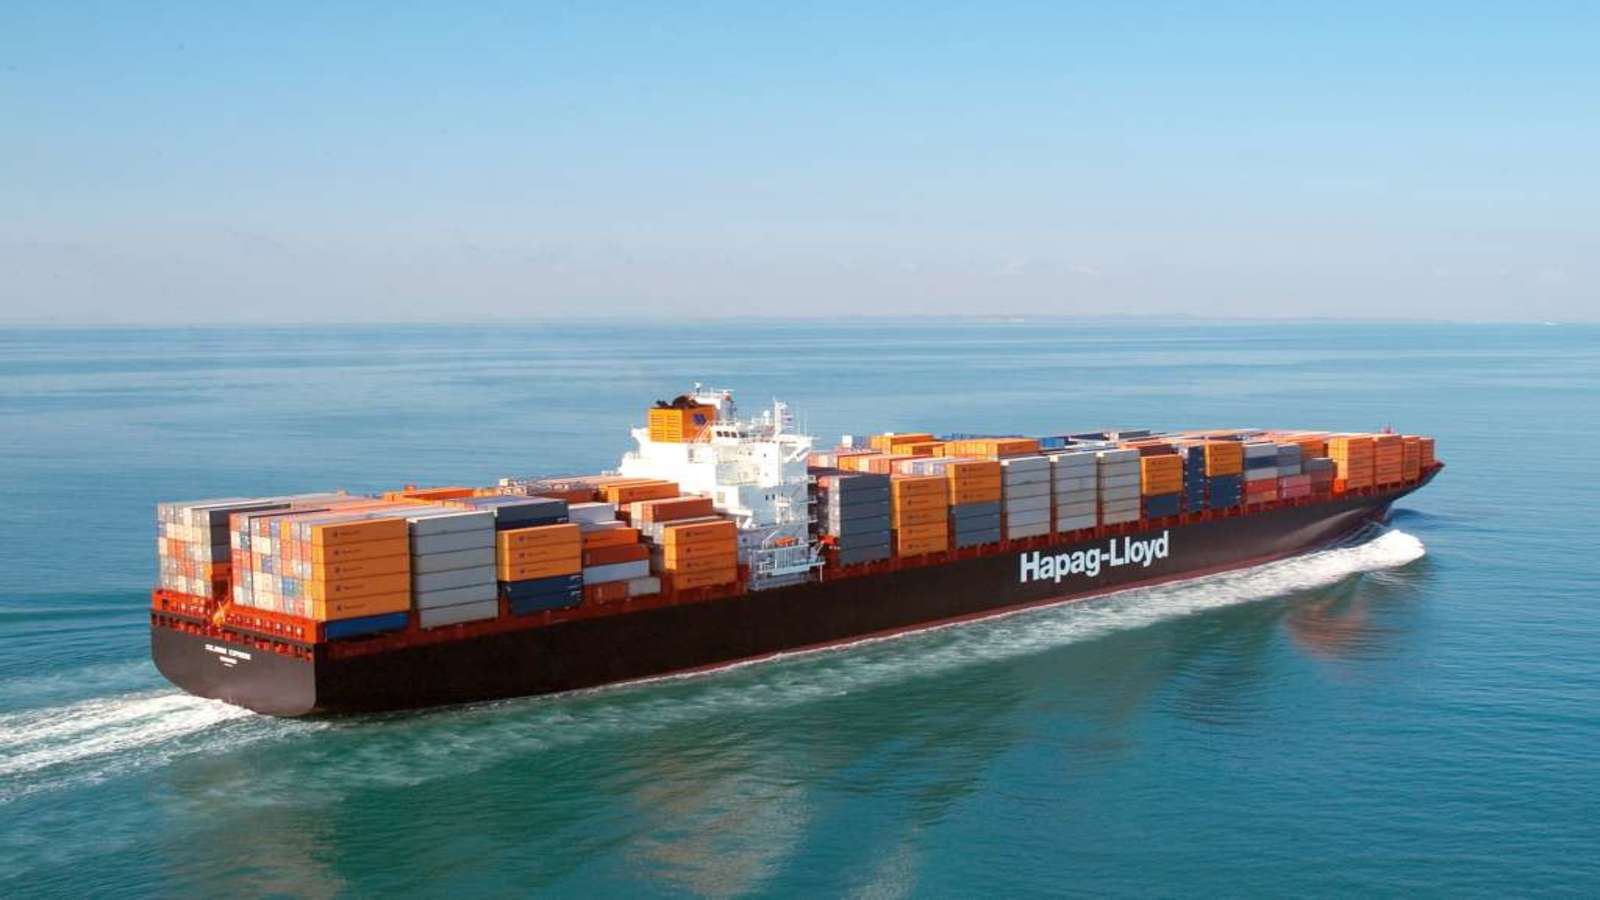 Hapag-Lloyd offers better connectivity between East Africa, Asia with launch of new westbound voyage service EAS3